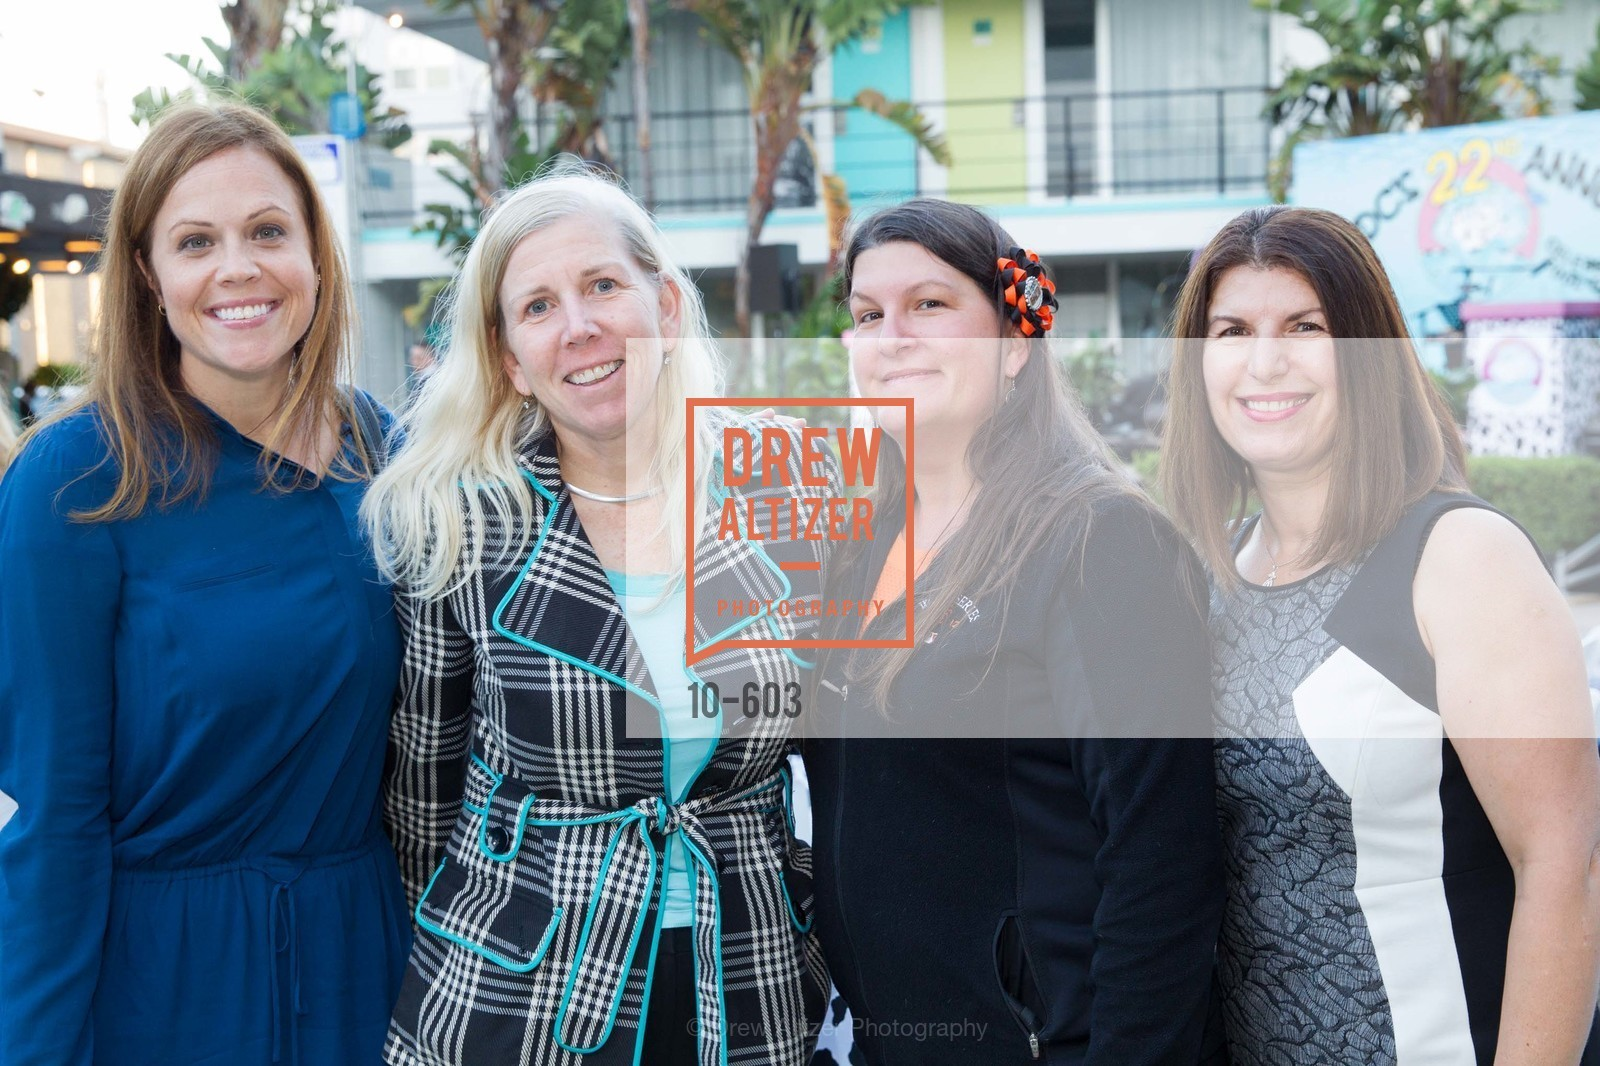 Kristin Biniek, Lynne Hillock, Jennifer Corbell, Samia Rached, 22nd Annual TNDC CELEBRITY POOL TOSS, US, October 9th, 2014,Drew Altizer, Drew Altizer Photography, full-service agency, private events, San Francisco photographer, photographer california